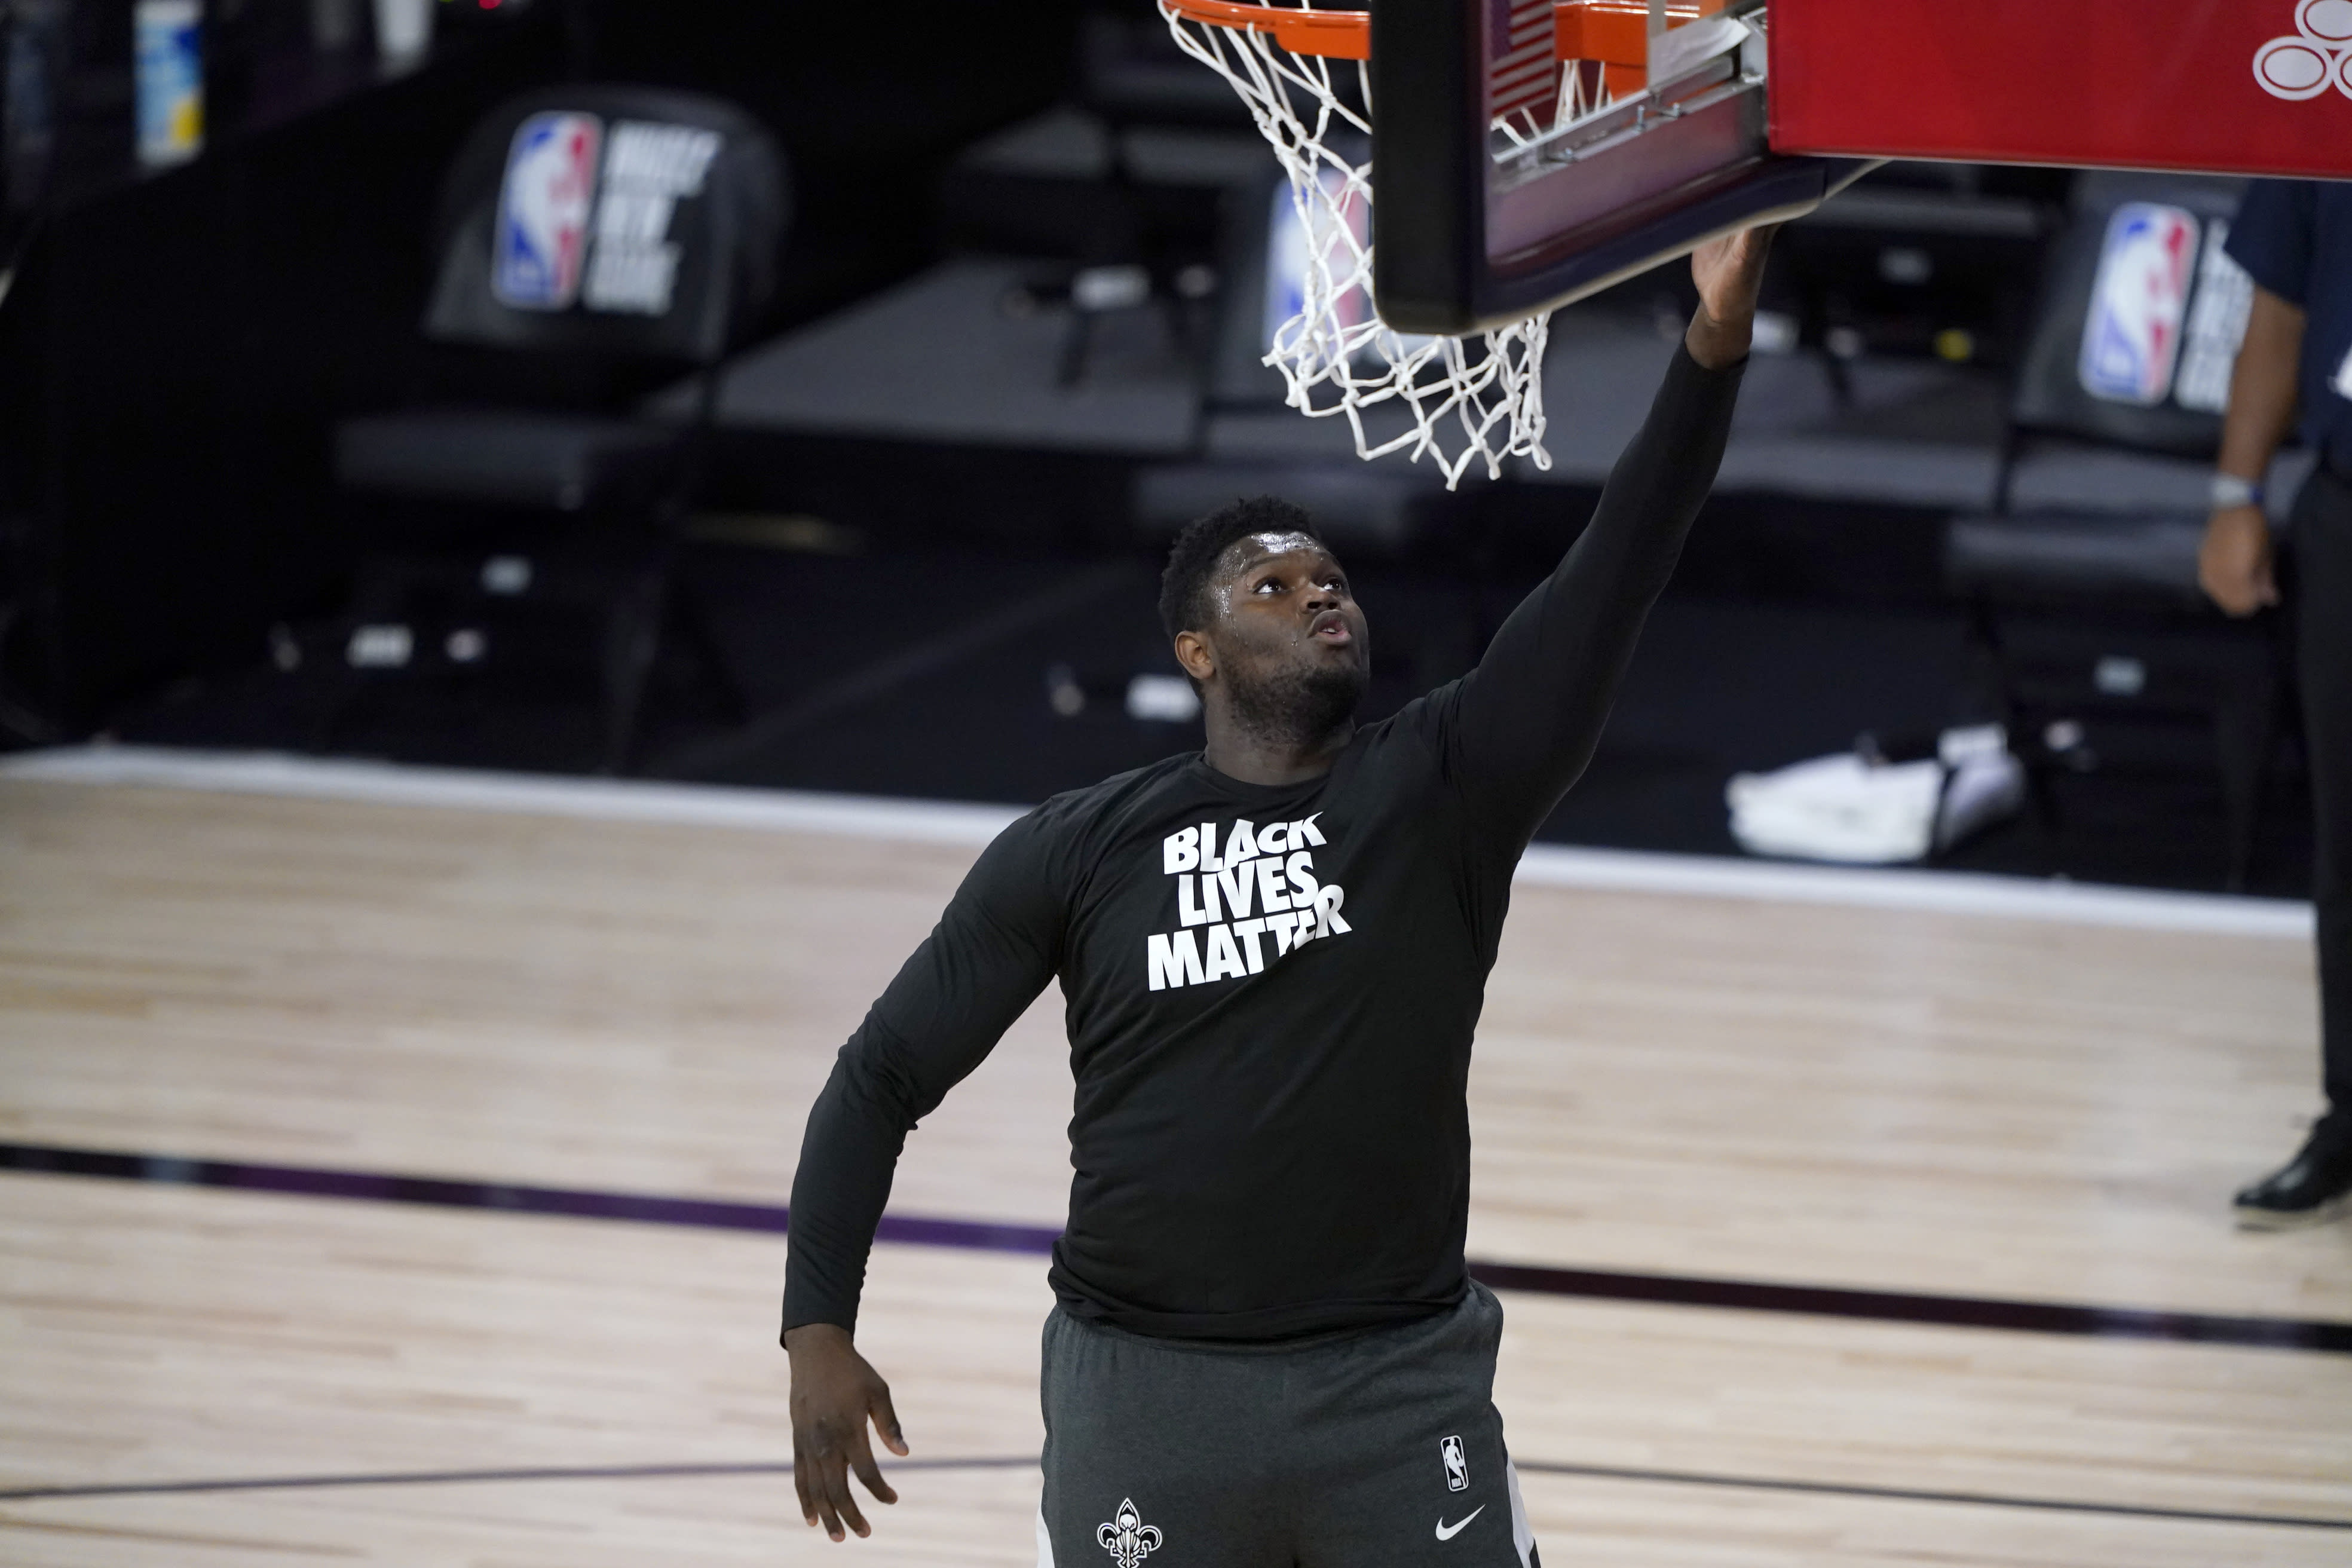 The Pelicans didn't play Zion Williamson in the minutes that mattered most. (Photo by Ashley Landis-Pool/Getty Images)